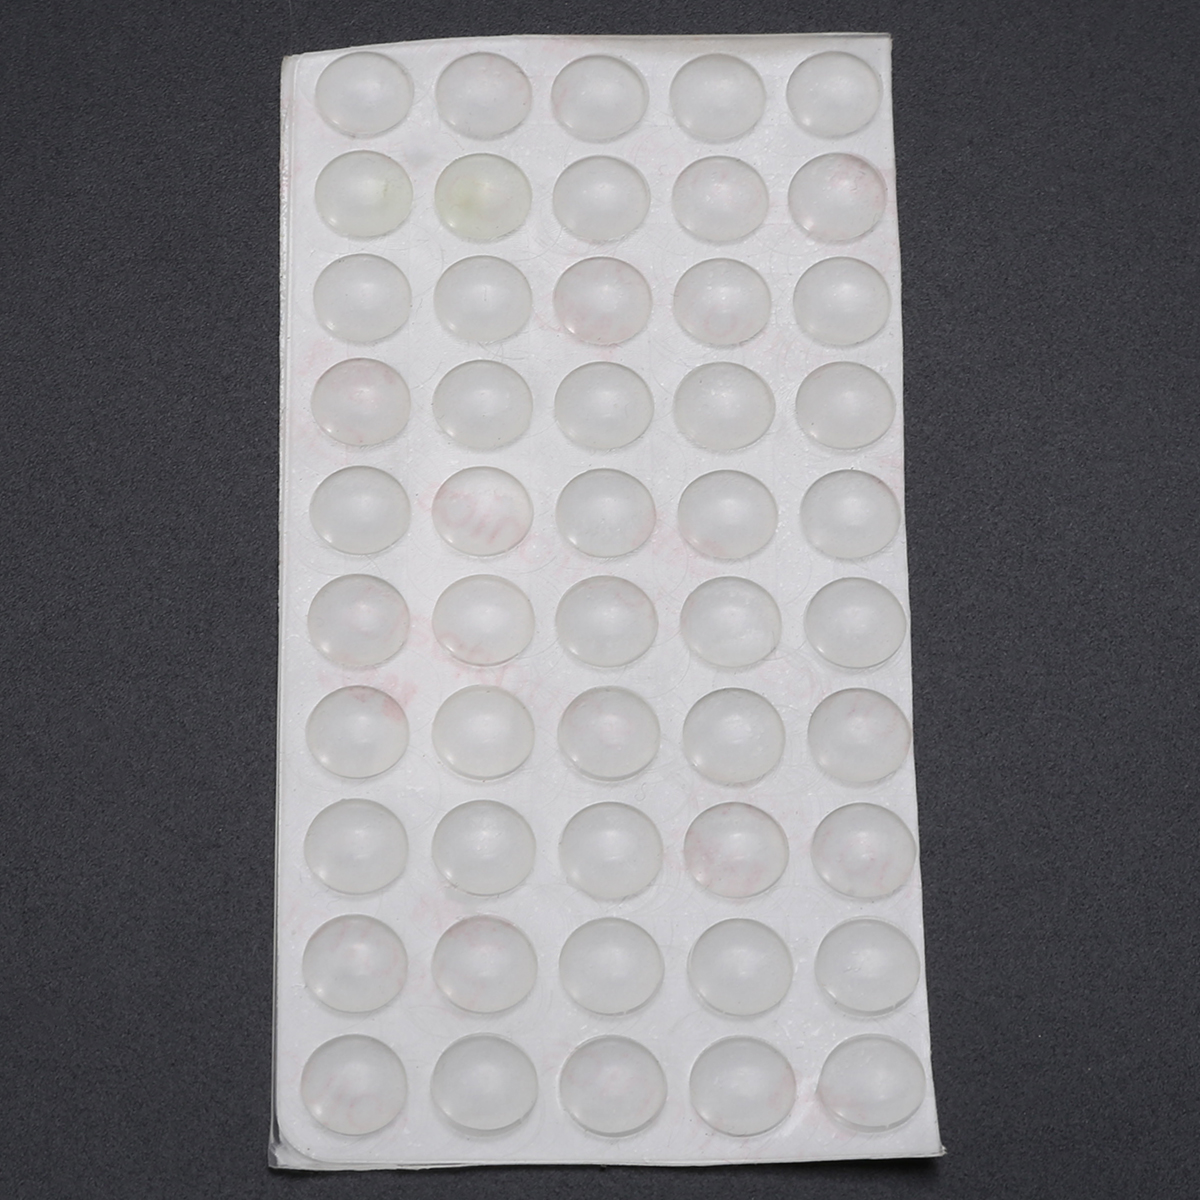 Fantastic Us 1 58 40 Off 50Pcs Self Adhesive Rubber Feet Pads Silicone Transparent Cupboard Door Close Buffer Bumper Stop Cushion For Drawer Cabinet In Inzonedesignstudio Interior Chair Design Inzonedesignstudiocom